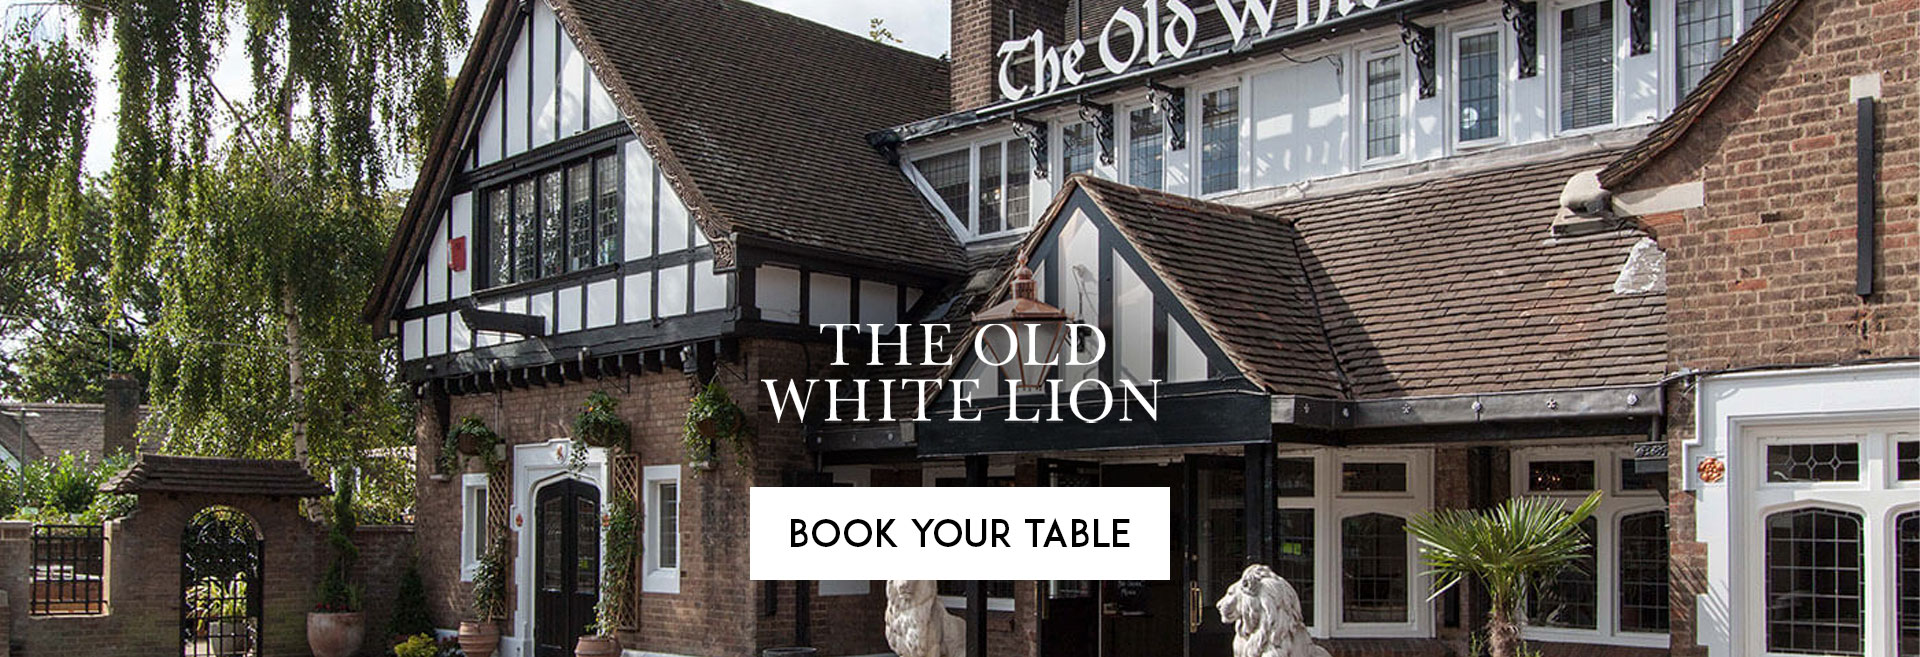 Book Your Table at The Old White Lion